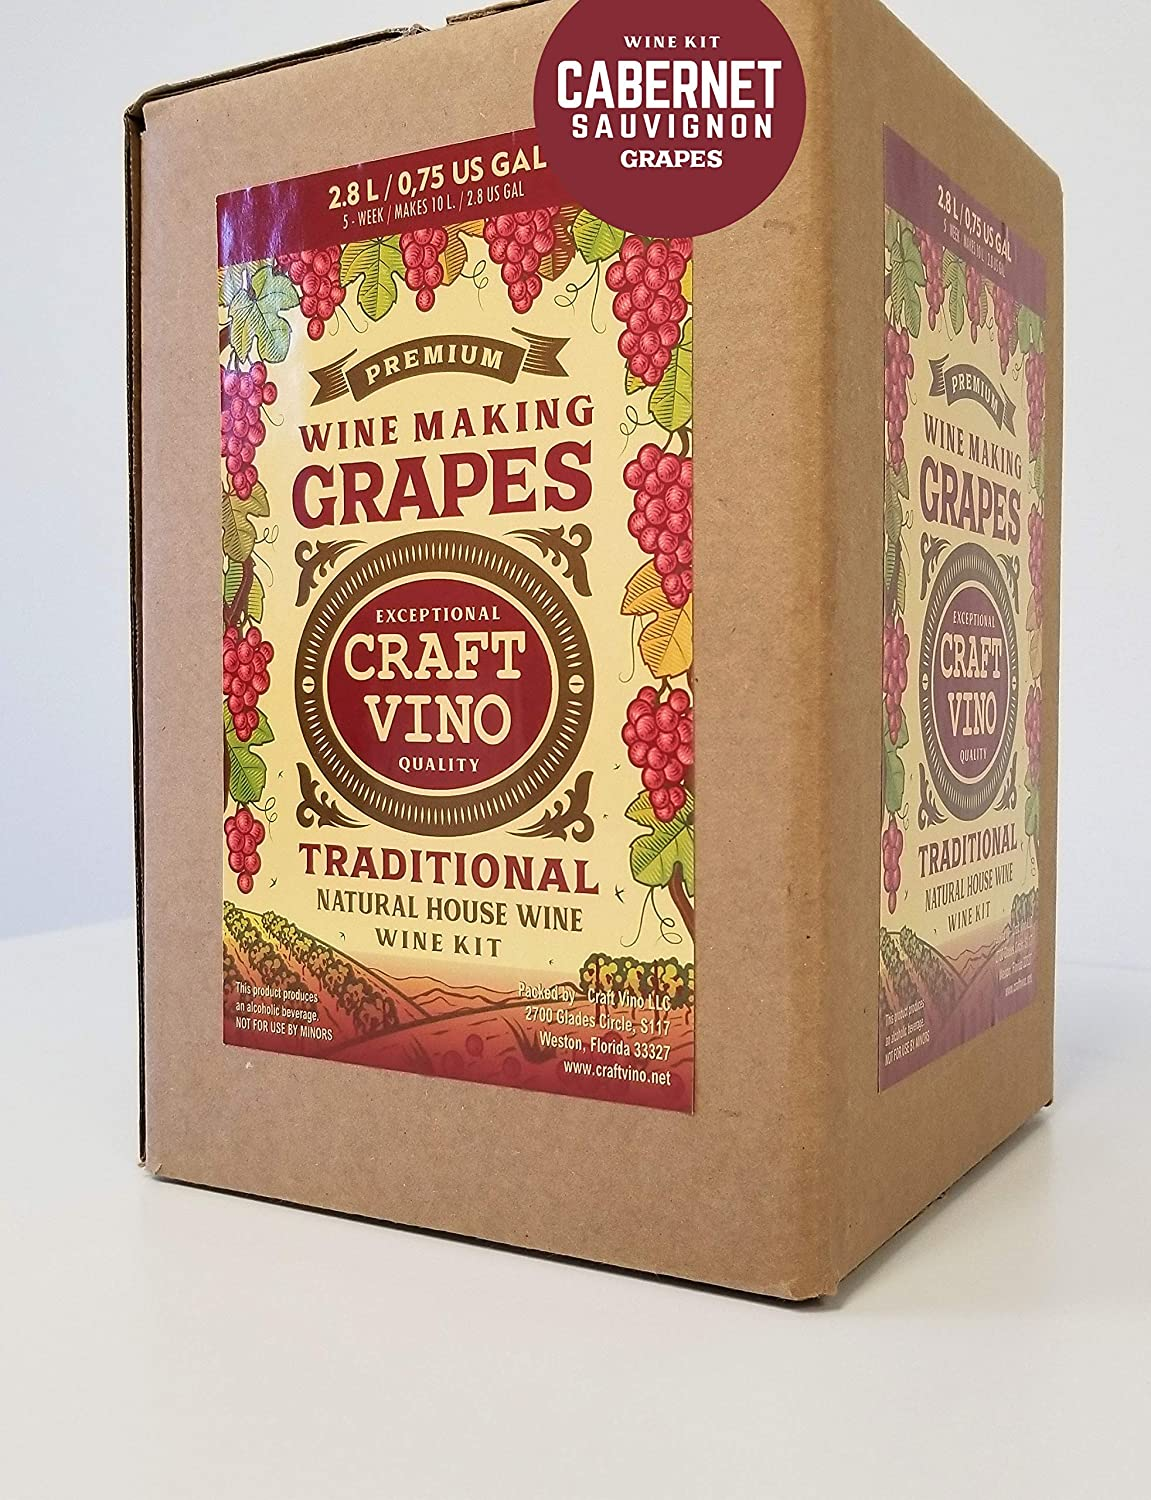 Amazon.com : CABERNET GRAPES Premium Wine Kit - Cabernet Sauvignon - Makes wine in 4-5 weeks : Grocery & Gourmet Food